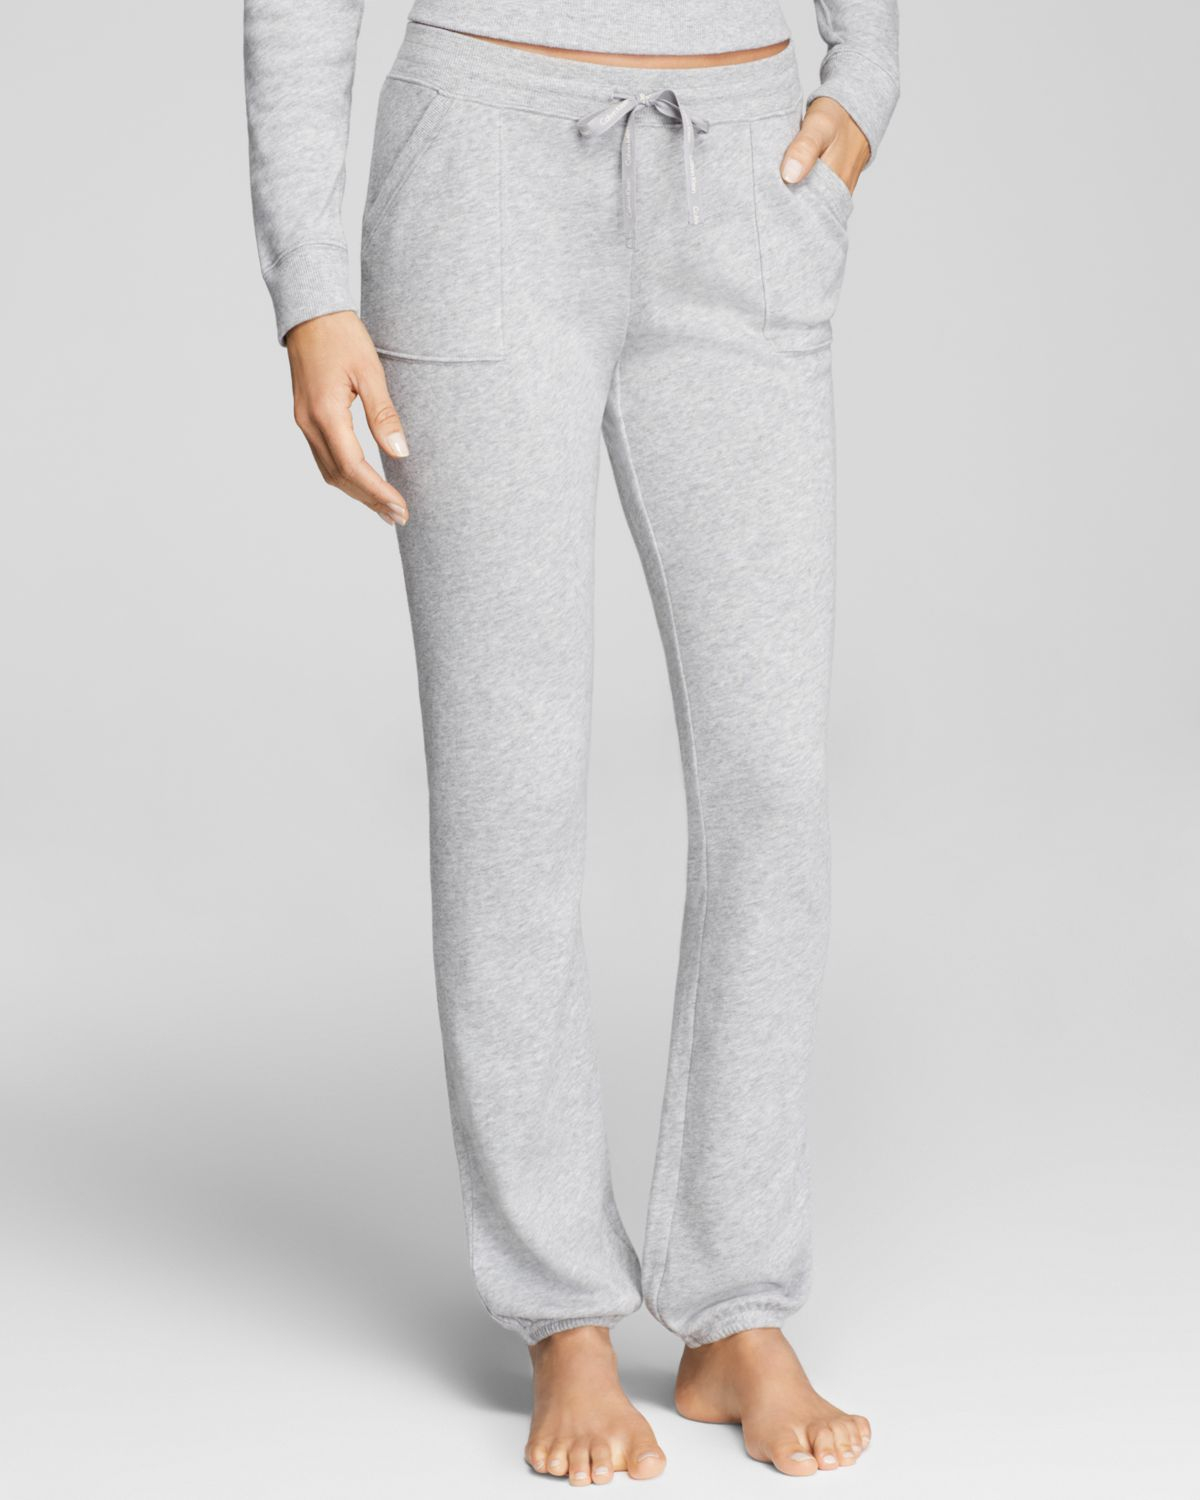 Lyst - Calvin Klein Cocoon Pajama Pants in Gray